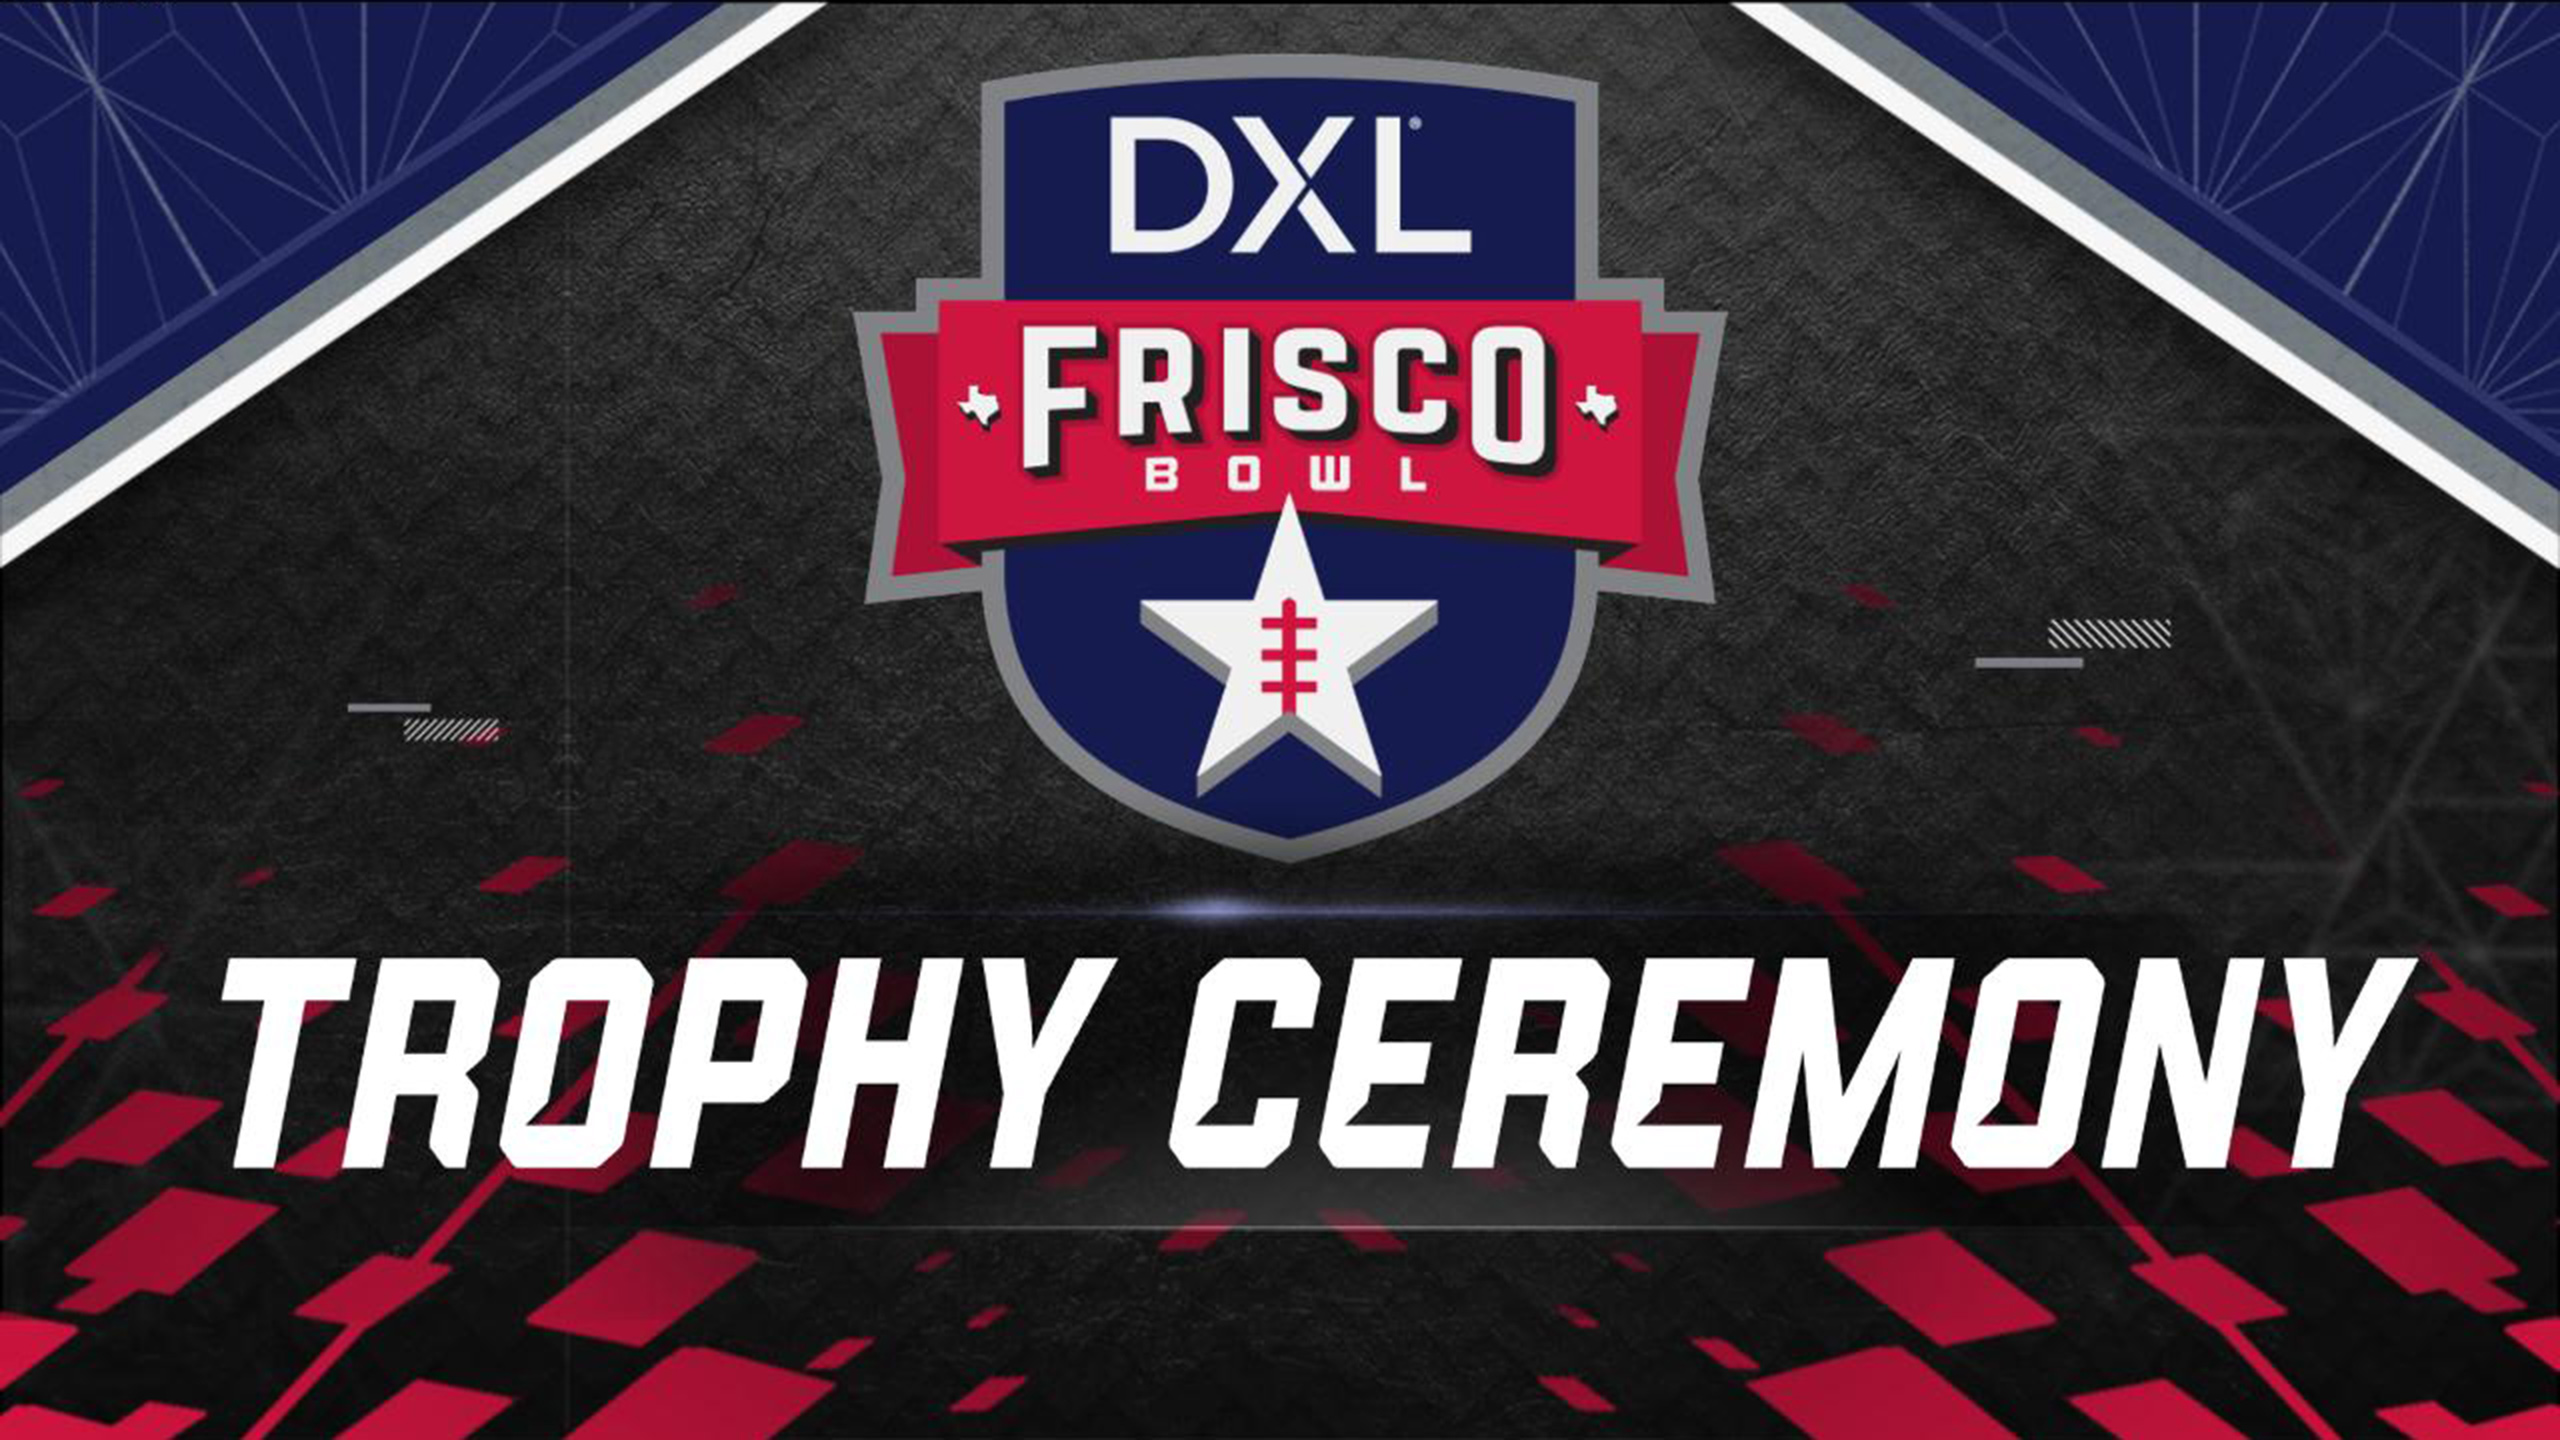 DXL Frisco Bowl Trophy Ceremony Presented by Capital One